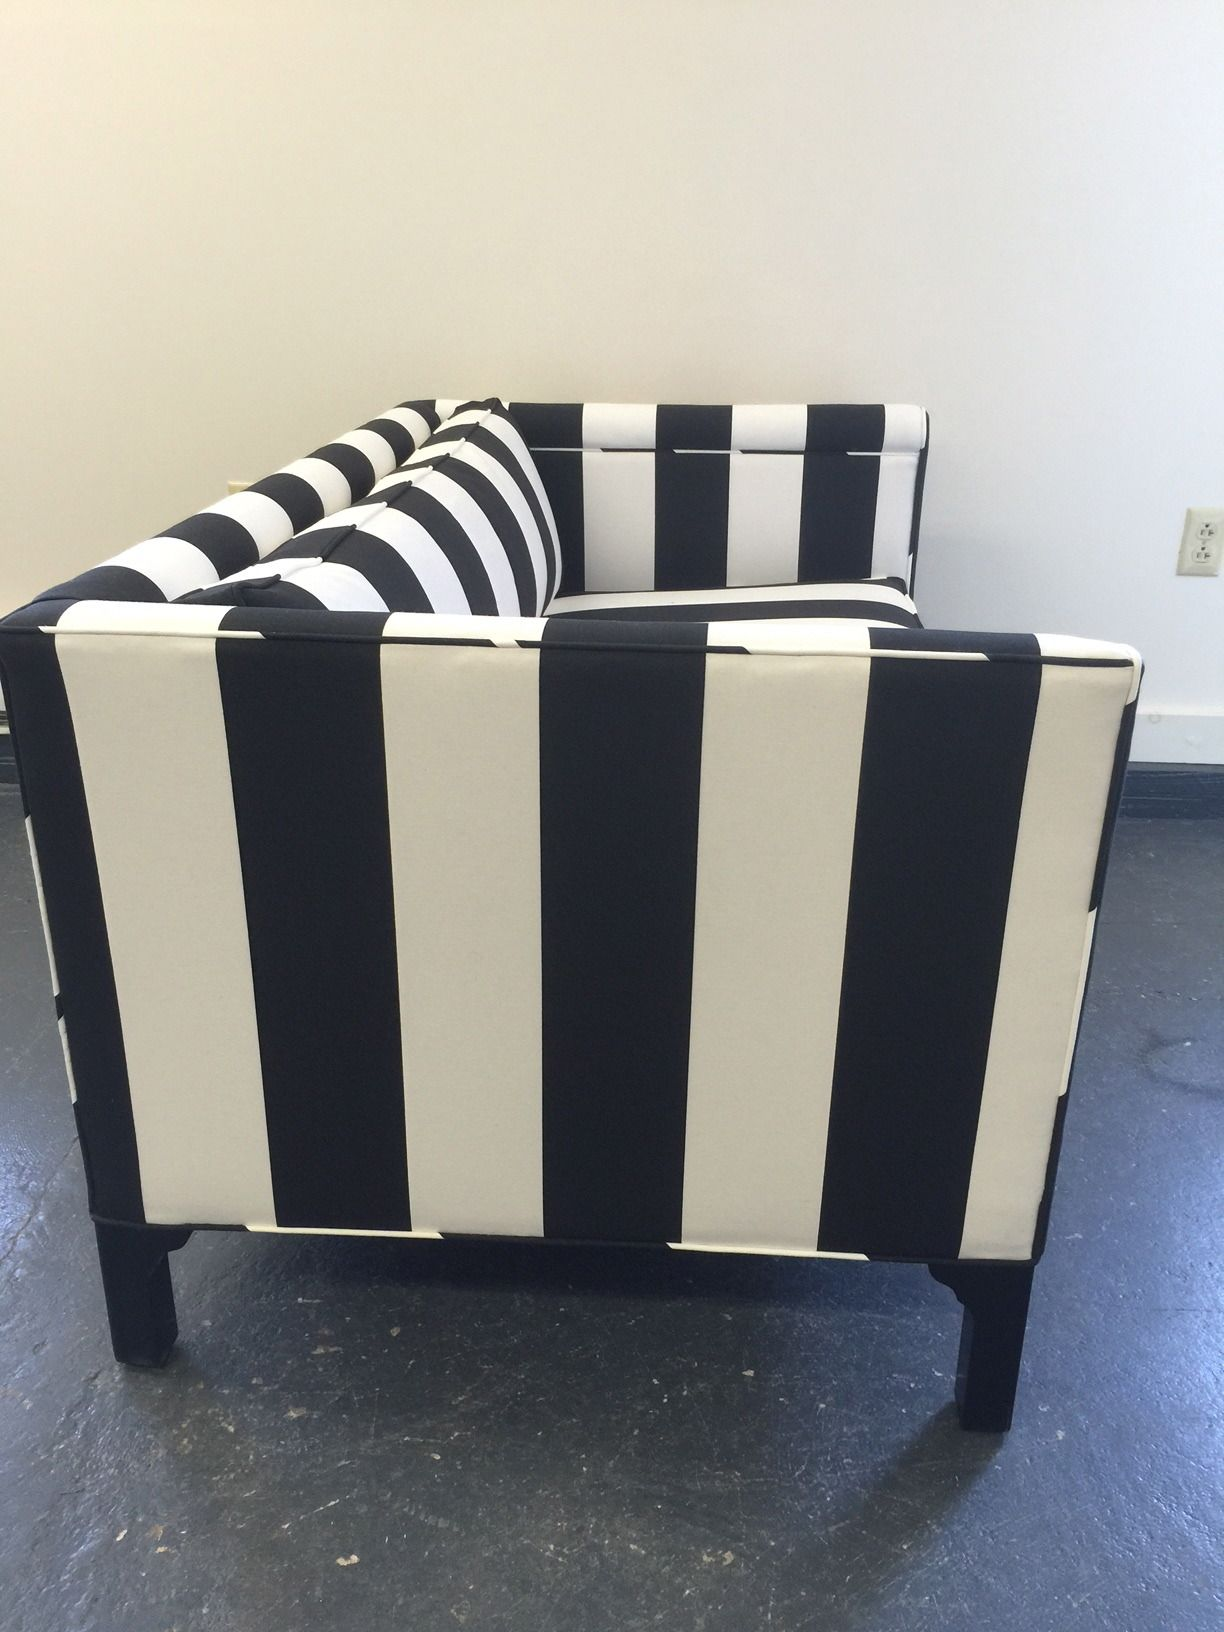 Pair Of Chic Updated Vintage Black And White Striped Loveseats